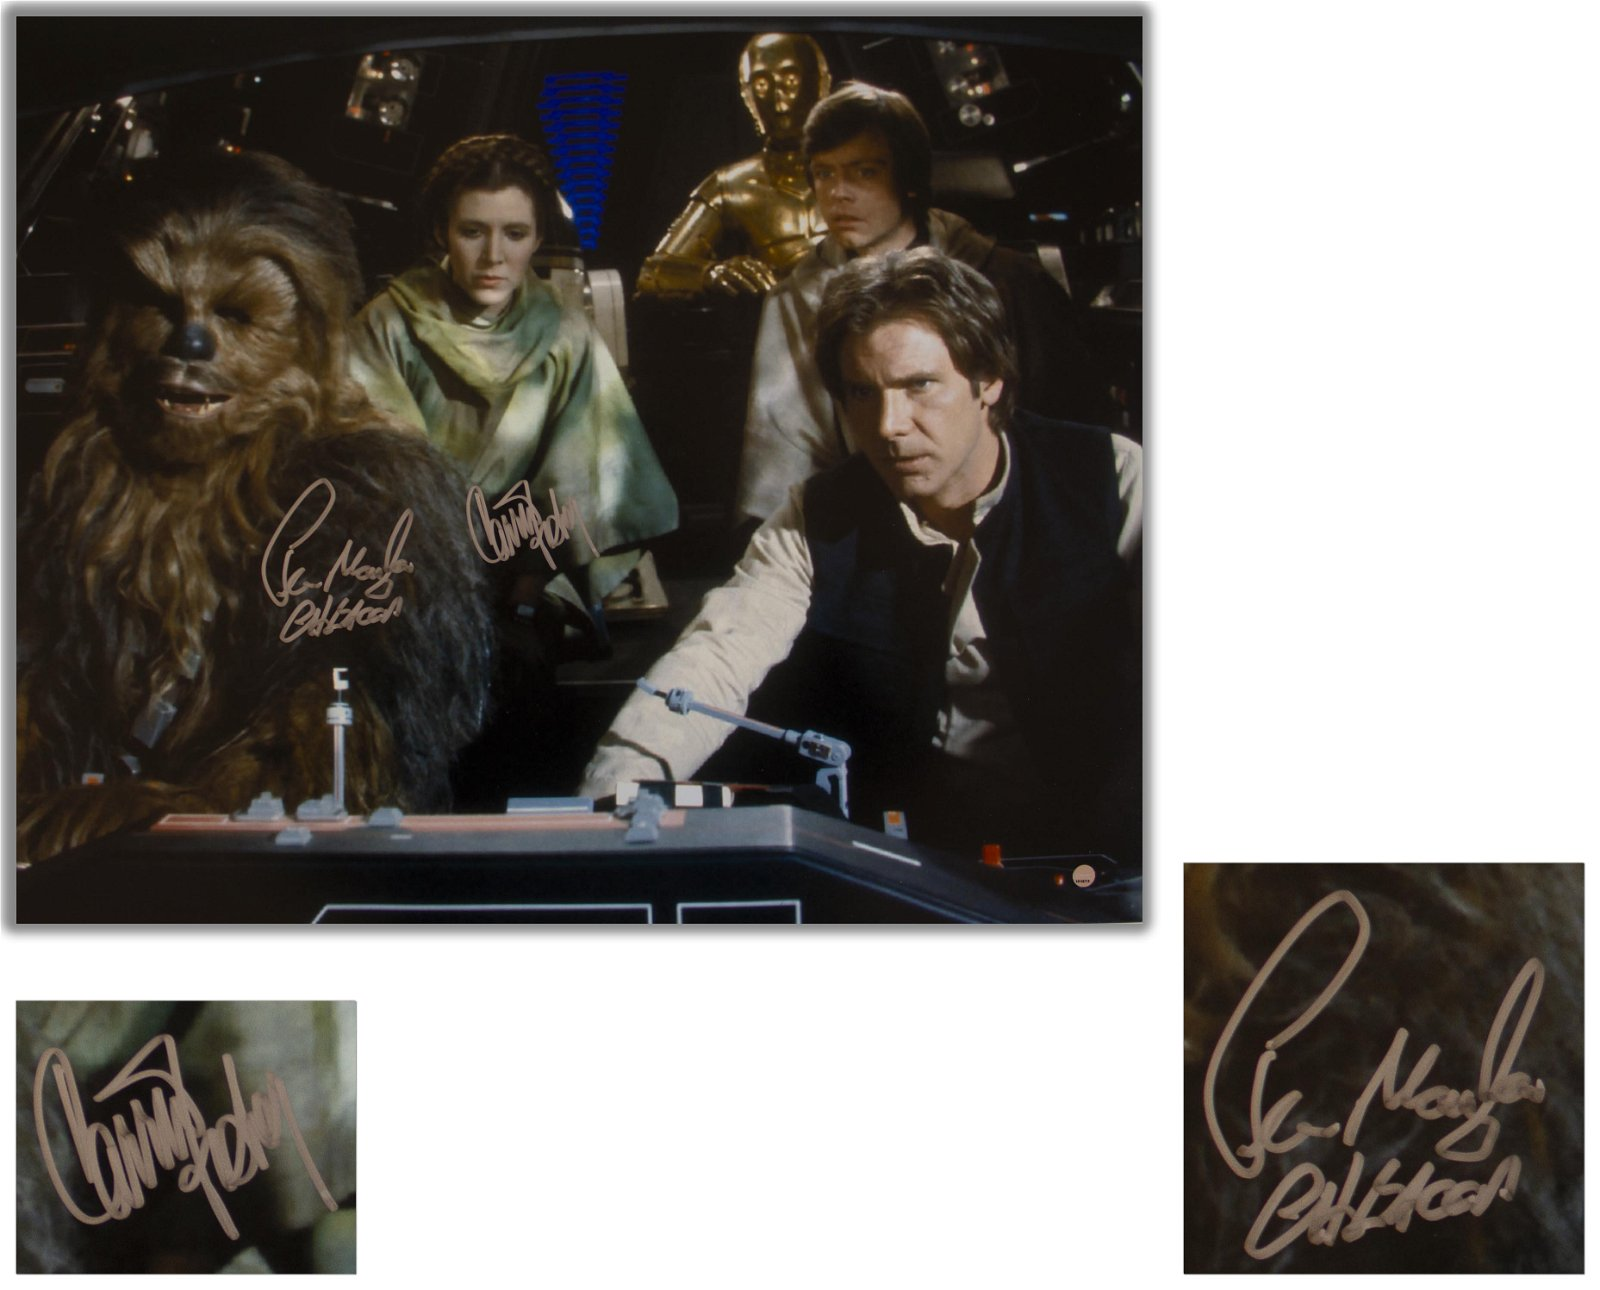 Carrie Fisher & Chewbacca Signed 20x16 Photo